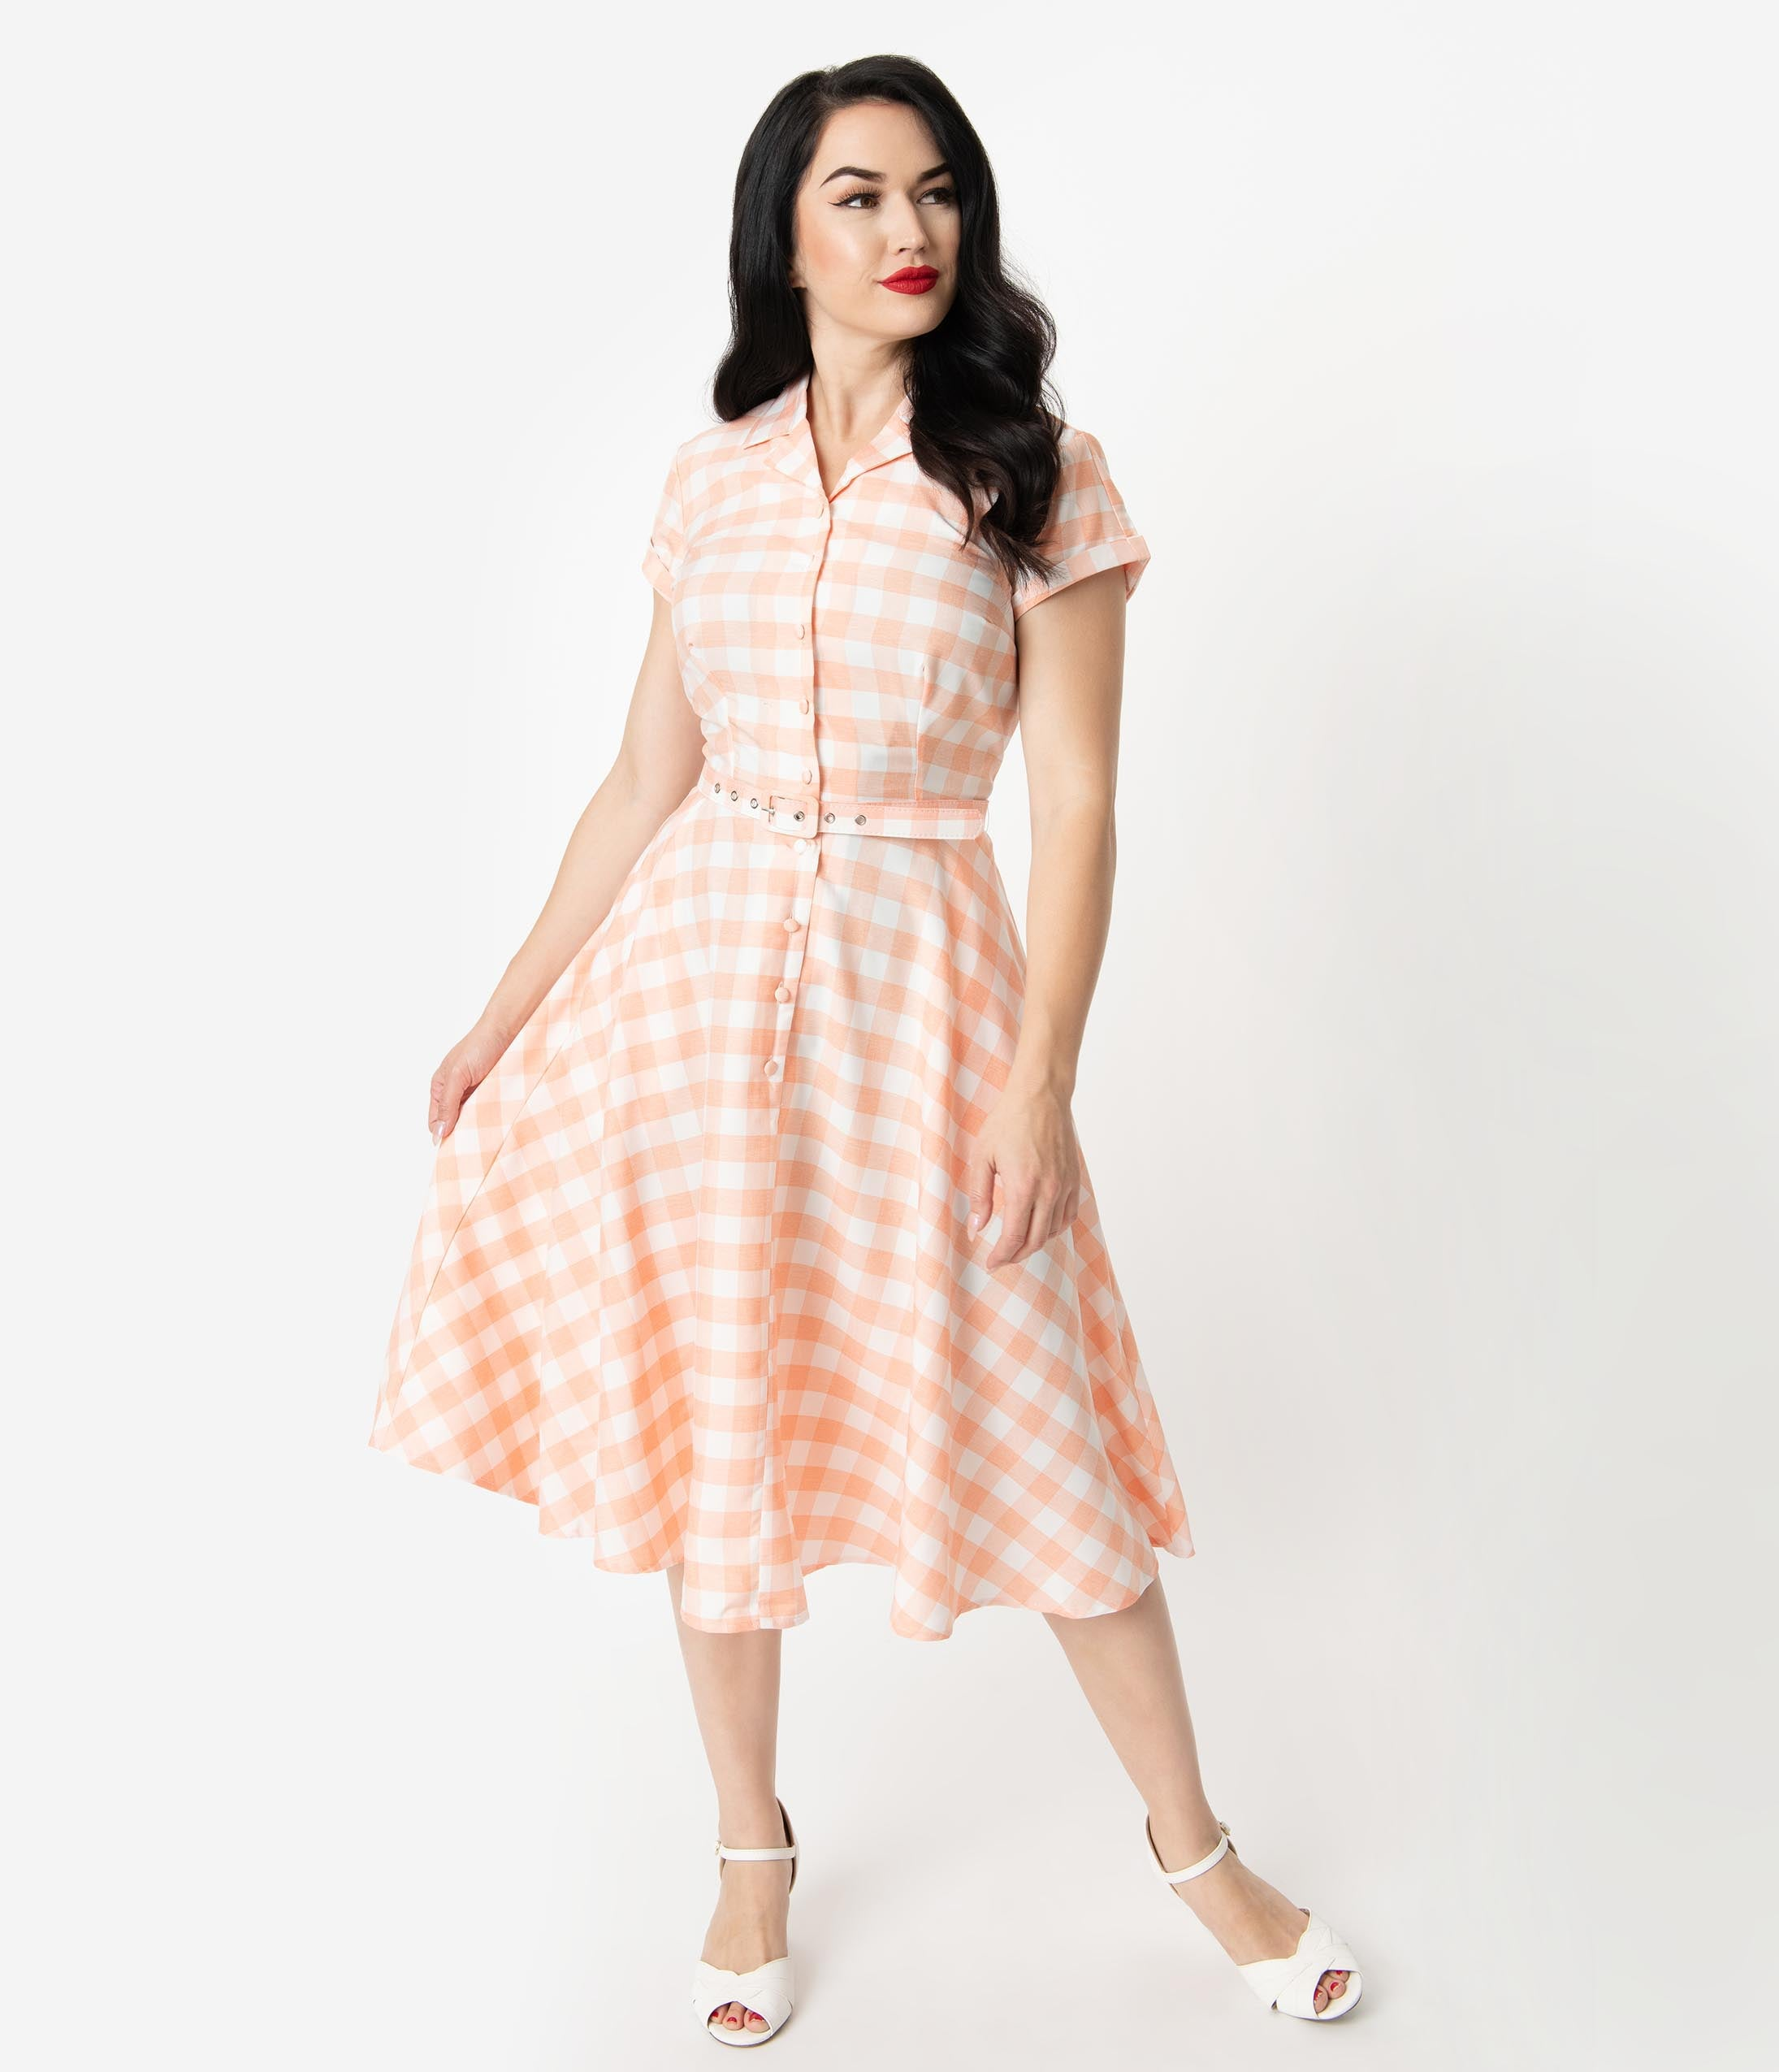 Fifties Dresses : 1950s Style Swing to Wiggle Dresses Unique Vintage 1950S Style Peach  White Gingham Alexis Swing Dress $98.00 AT vintagedancer.com